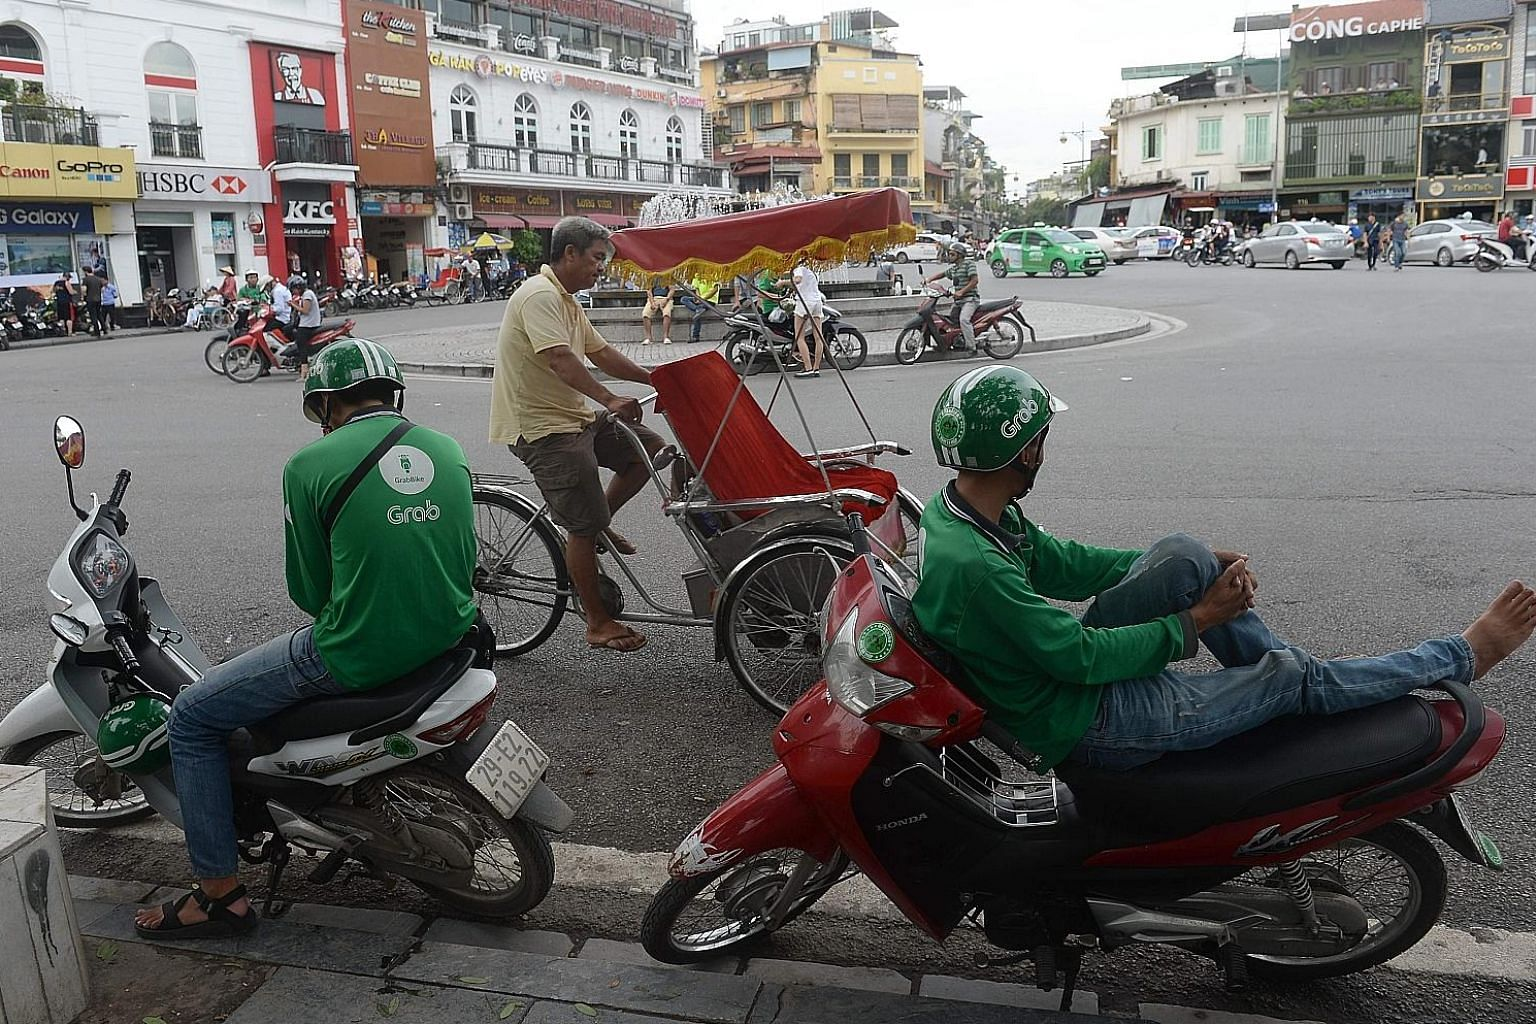 Motorcycle taxi drivers waiting for customers in downtown Hanoi last month. While Vietnam's schools equip students with basic skills for low-wage assembly-line work, its colleges and universities are failing to prepare youth for more complex work.